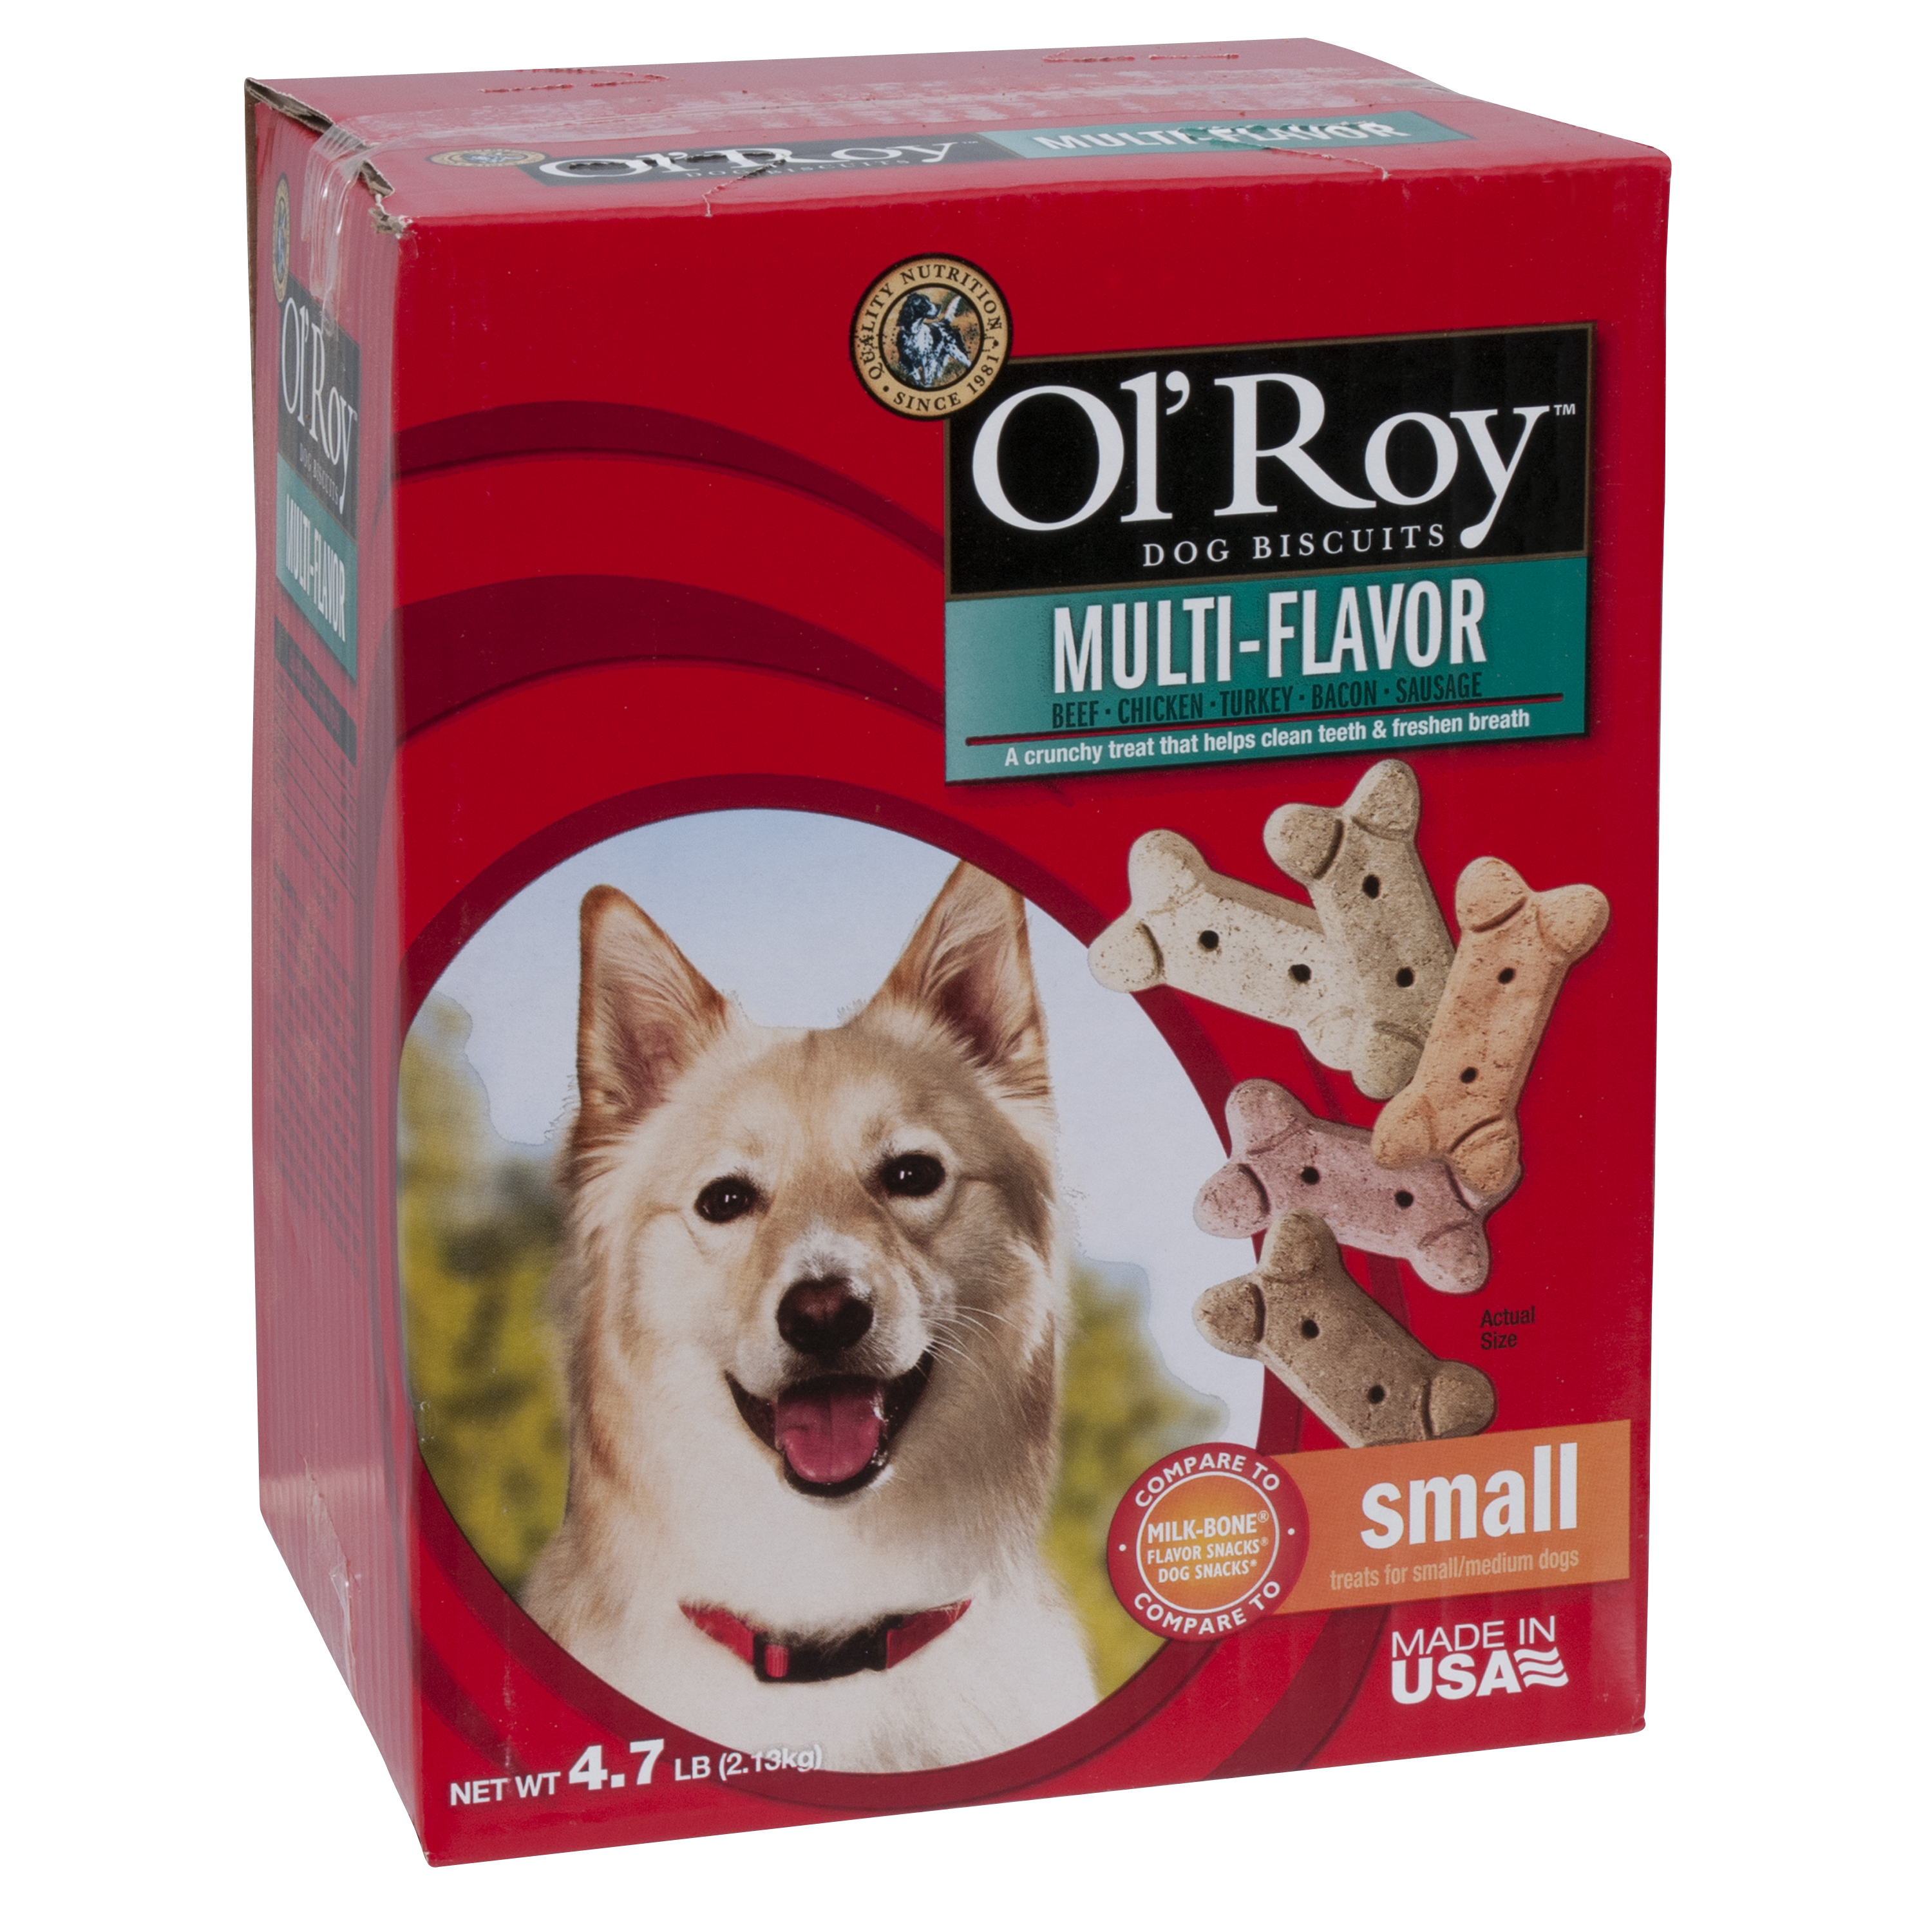 Ol' Roy Multi-Flavor Biscuits Small Breed Dog Treats, 4.7 Lb